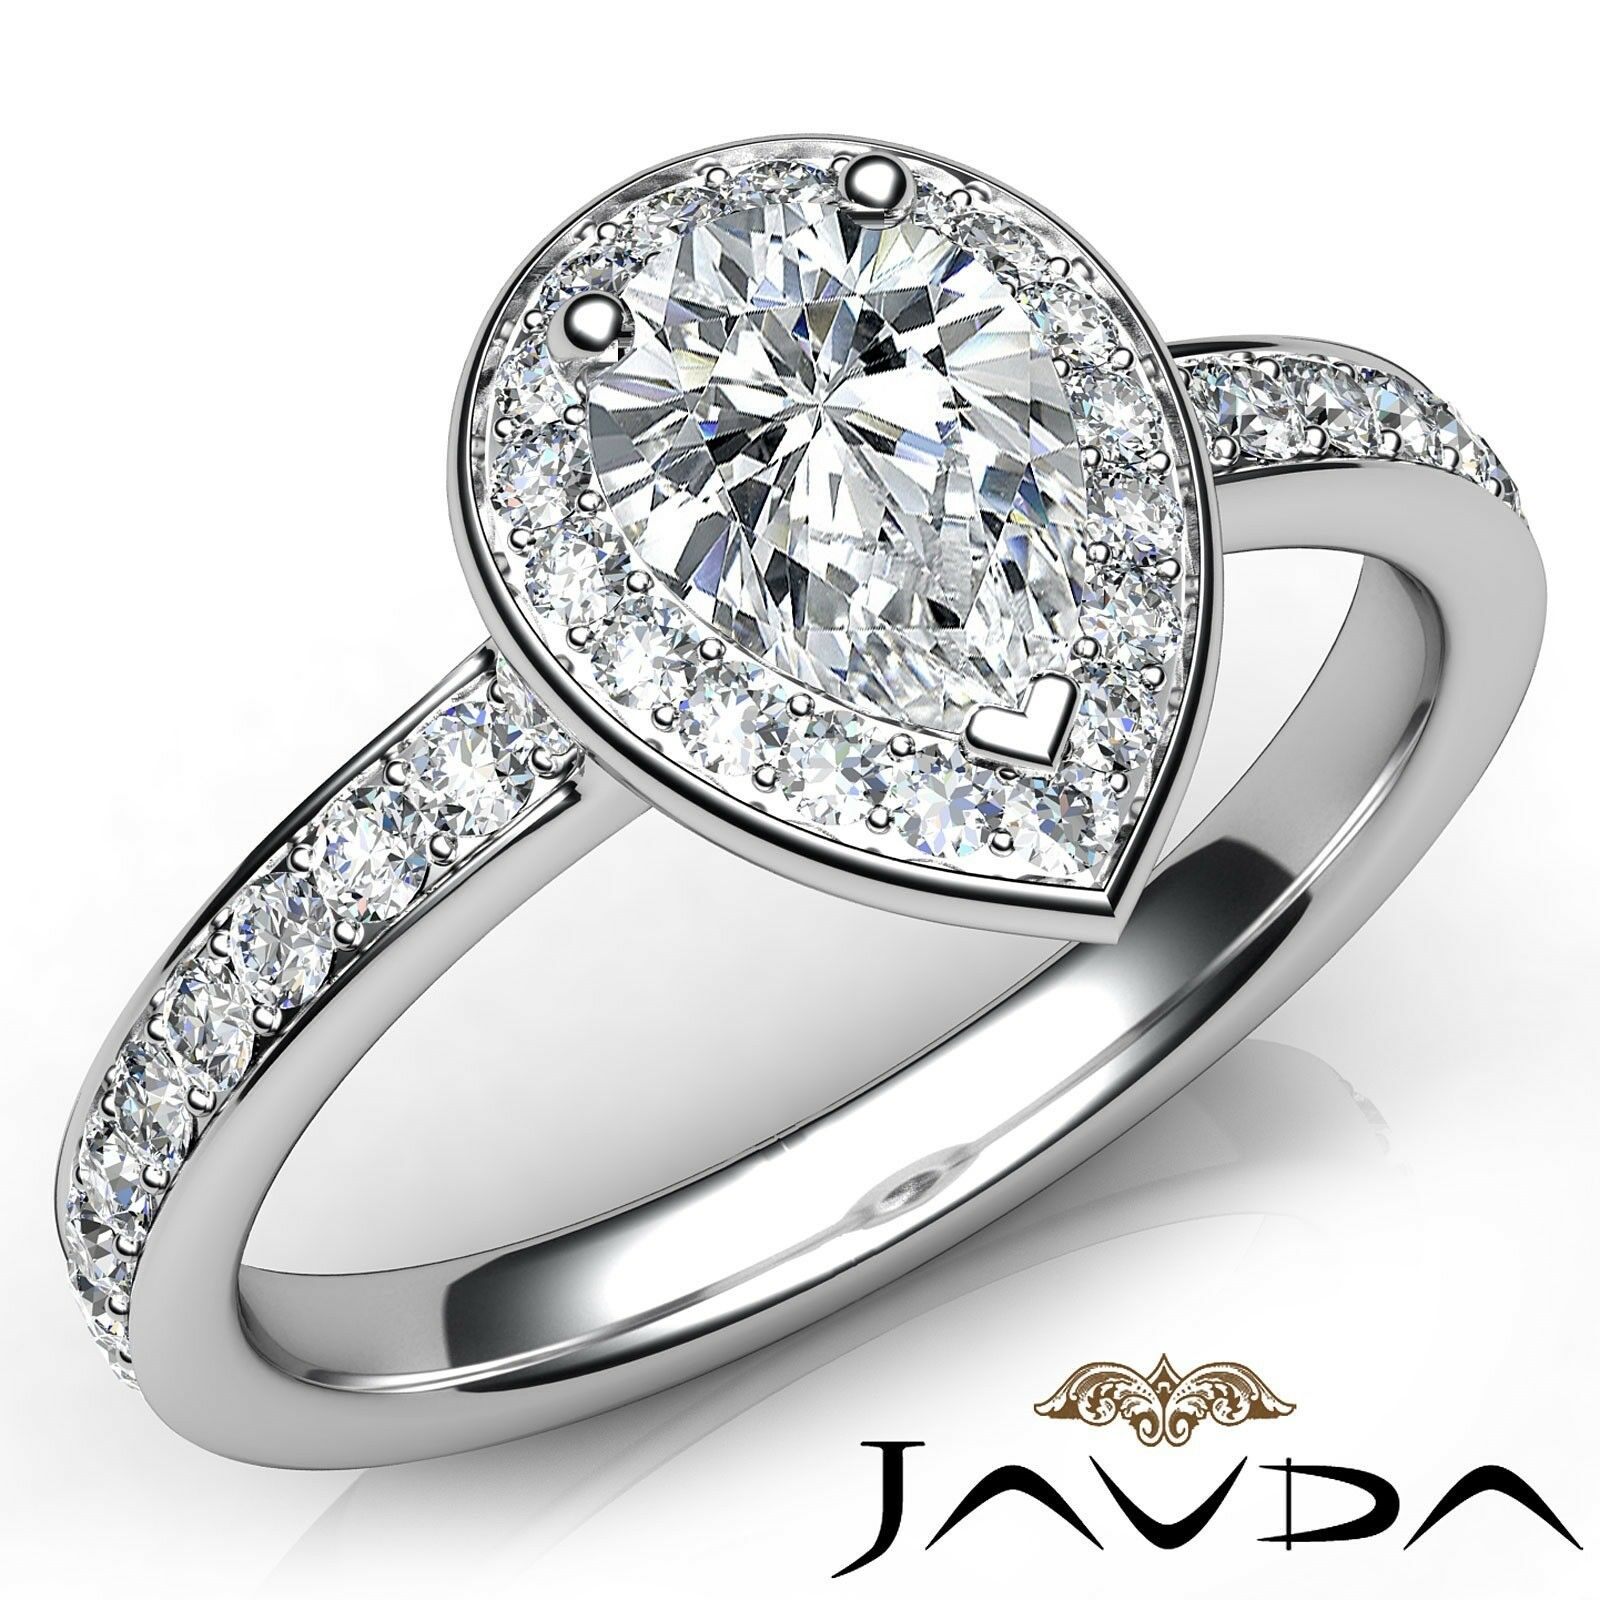 1.25ctw Halo Side-Stone Pave Set Pear Diamond Engagement Ring GIA F-VS1 W Gold